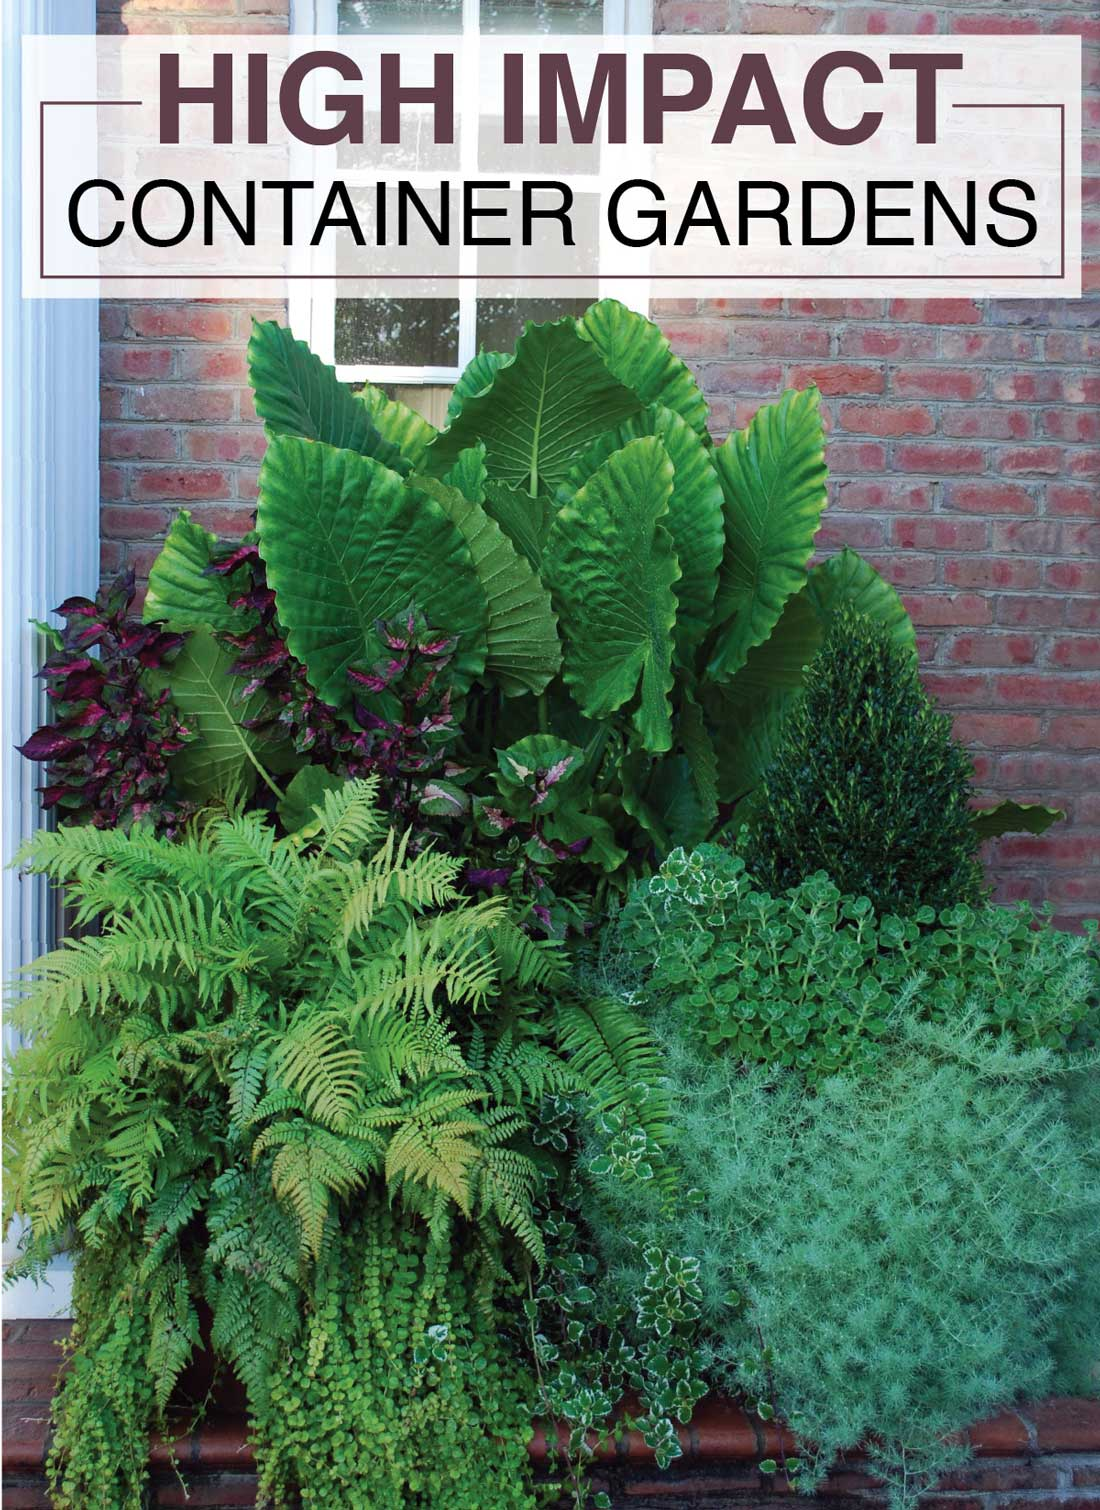 High Impact Container Gardens